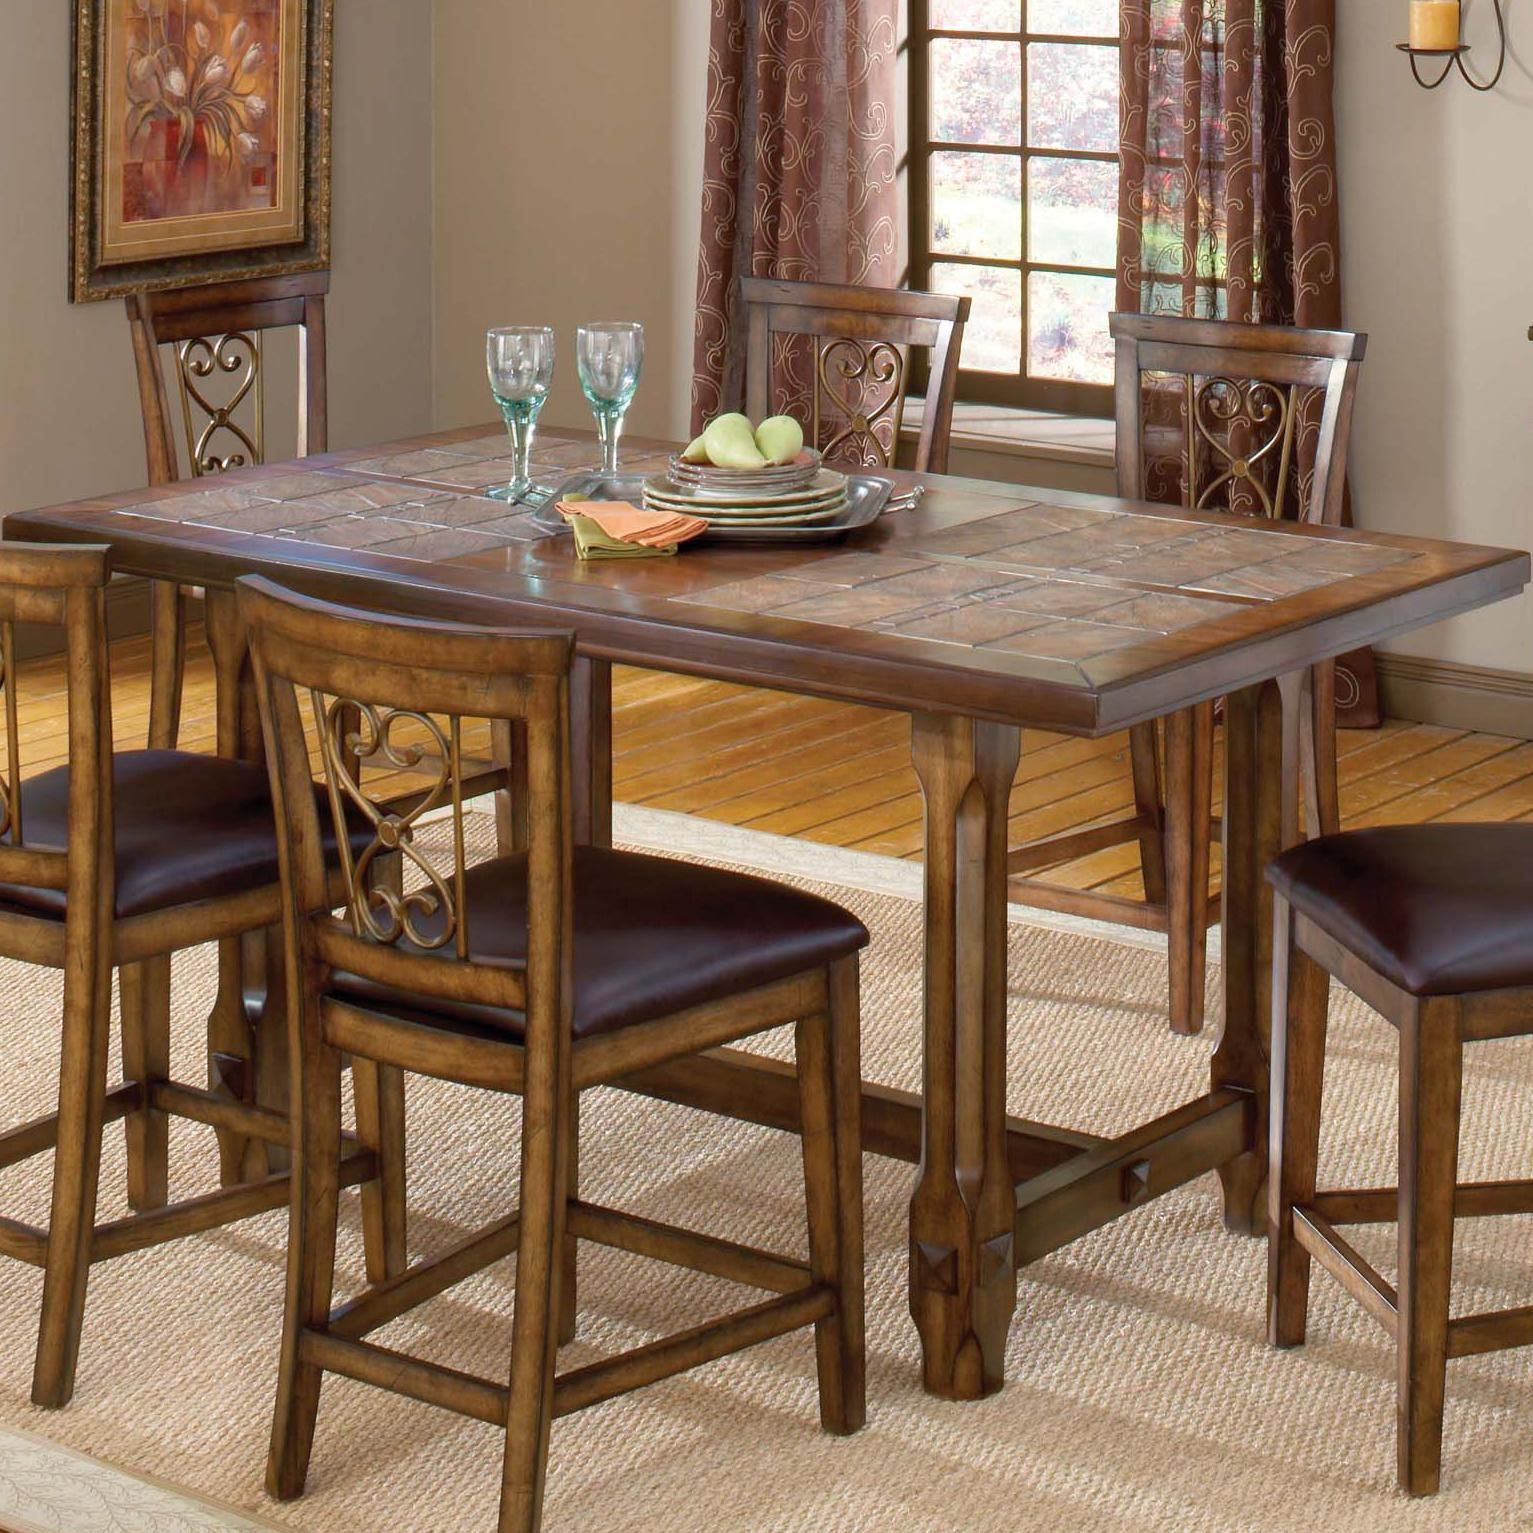 Villagio trestle counter height dining table by hillsdale for Height of dining room table